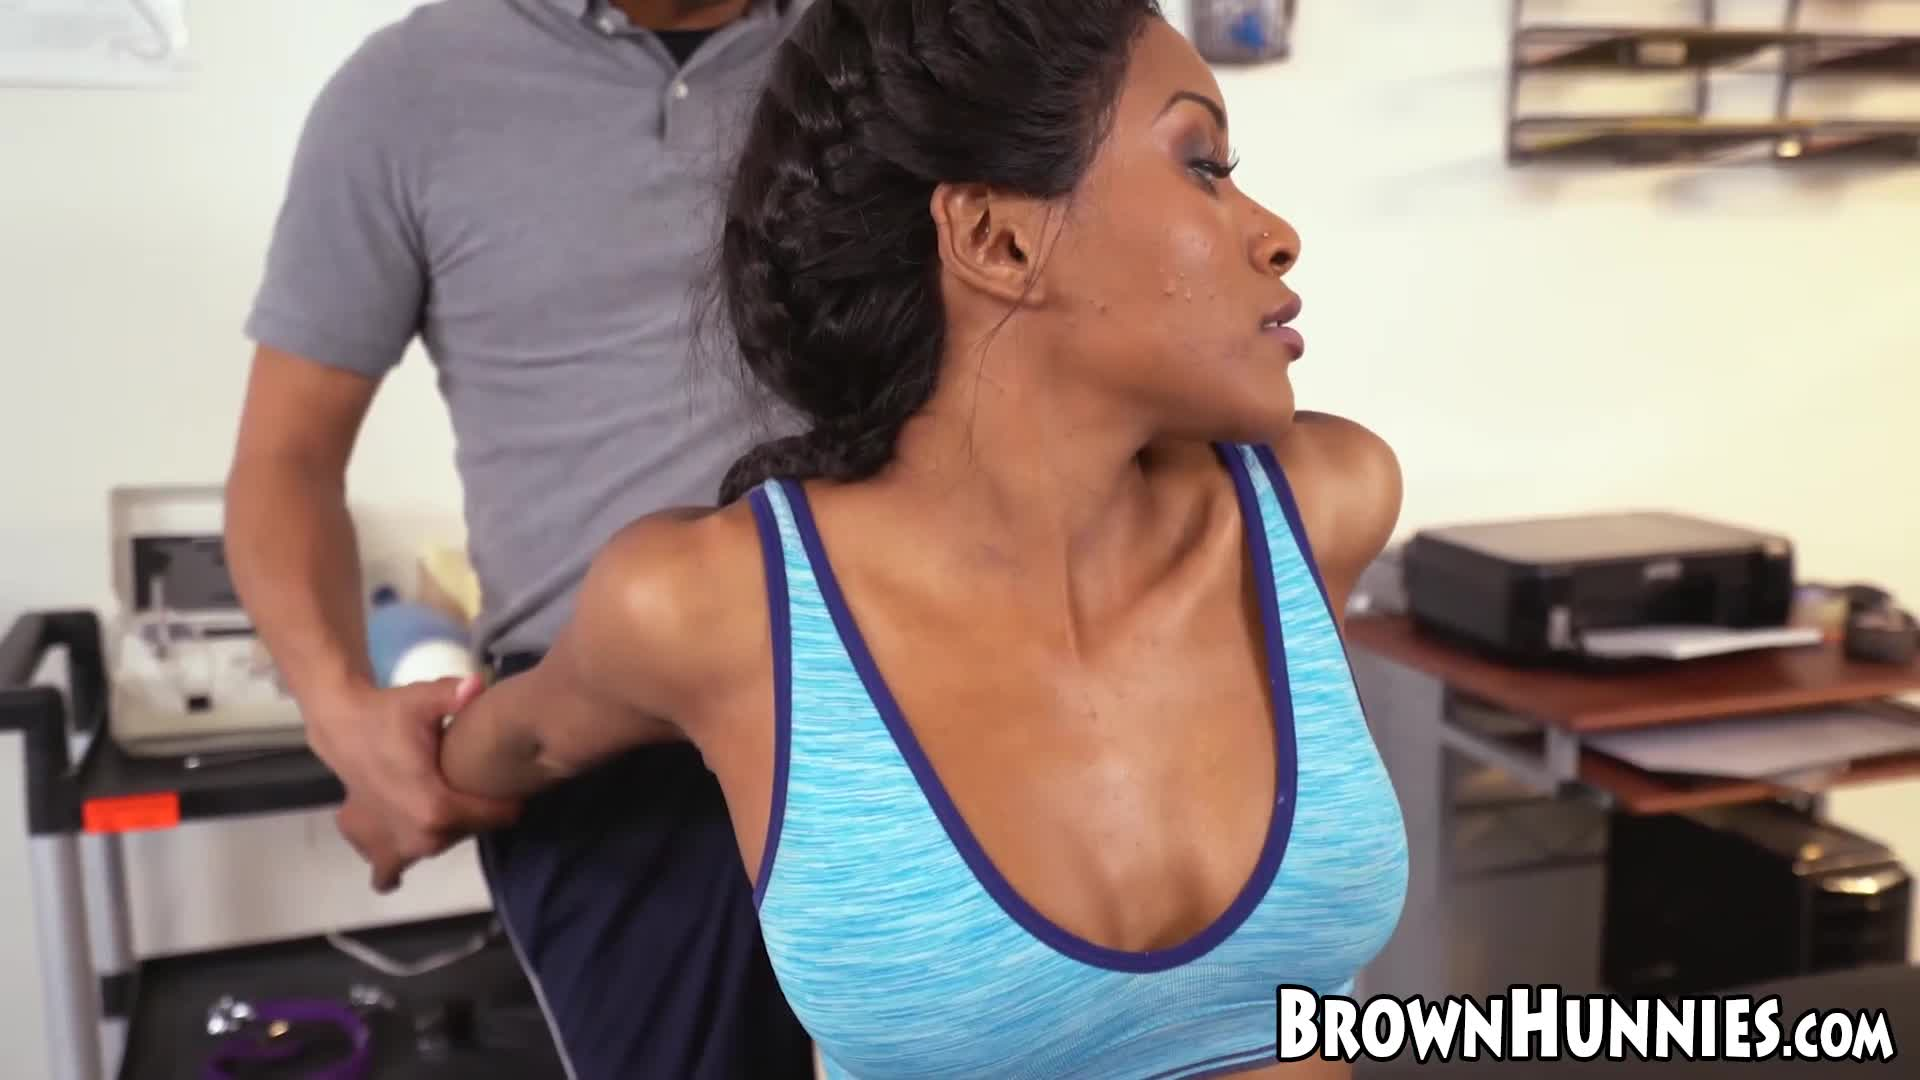 Massage session with brown babe Indigo Vanity ends with sex